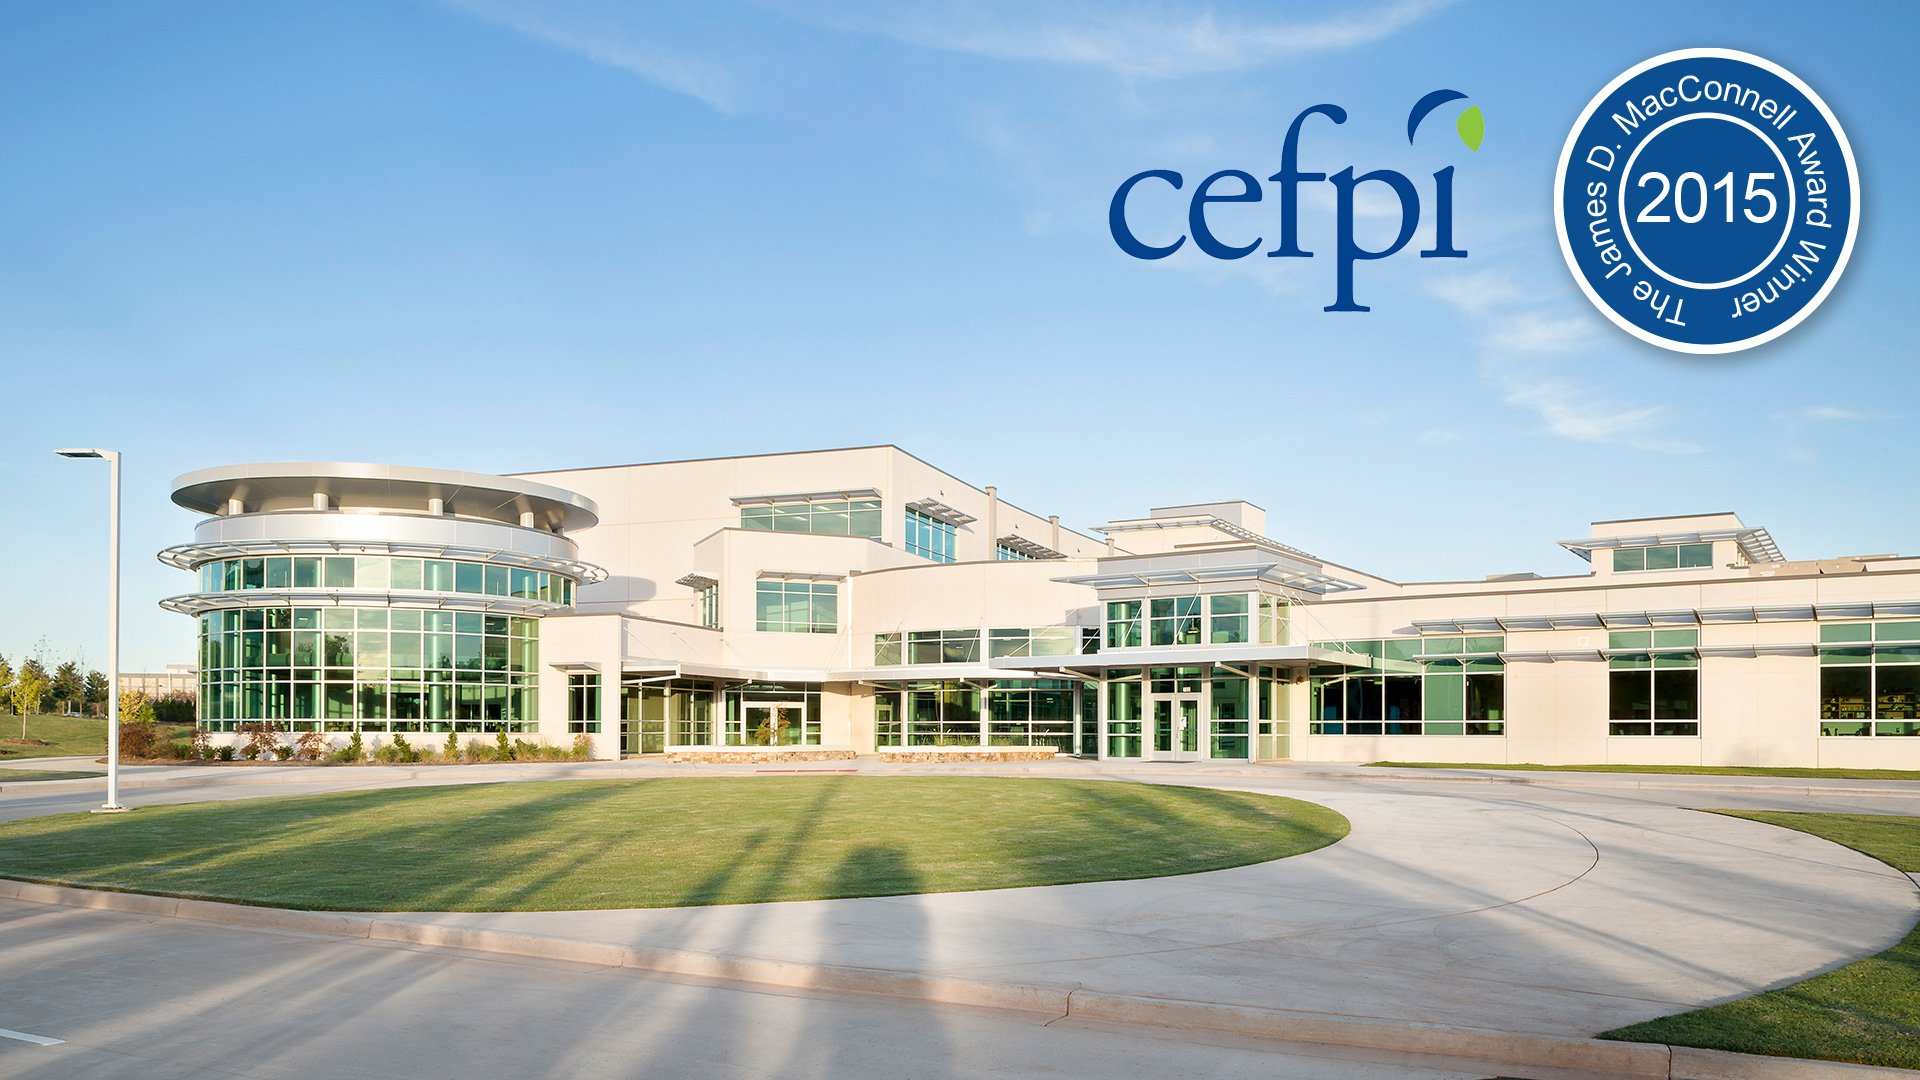 Dr. Phinnize J. Fisher Middle School Named First-Ever South Carolina Winner for National CEFPI Award